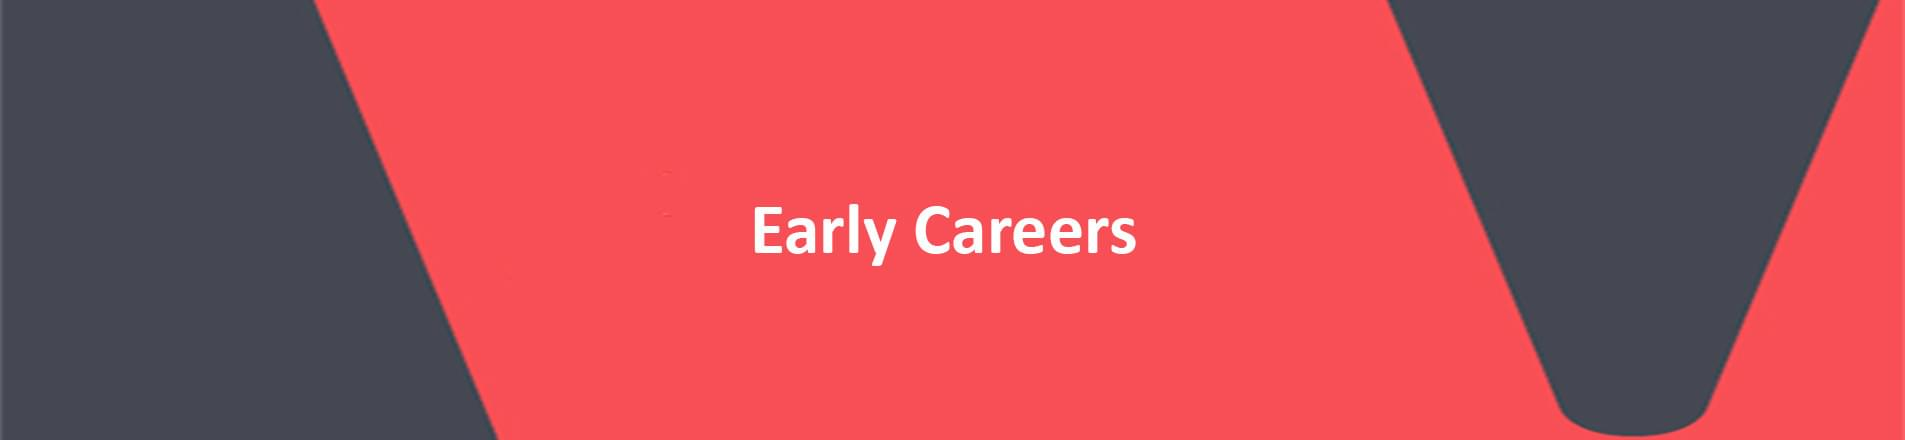 "VERCIDA logo, red banner background with white letters saying ""Early Careers"""